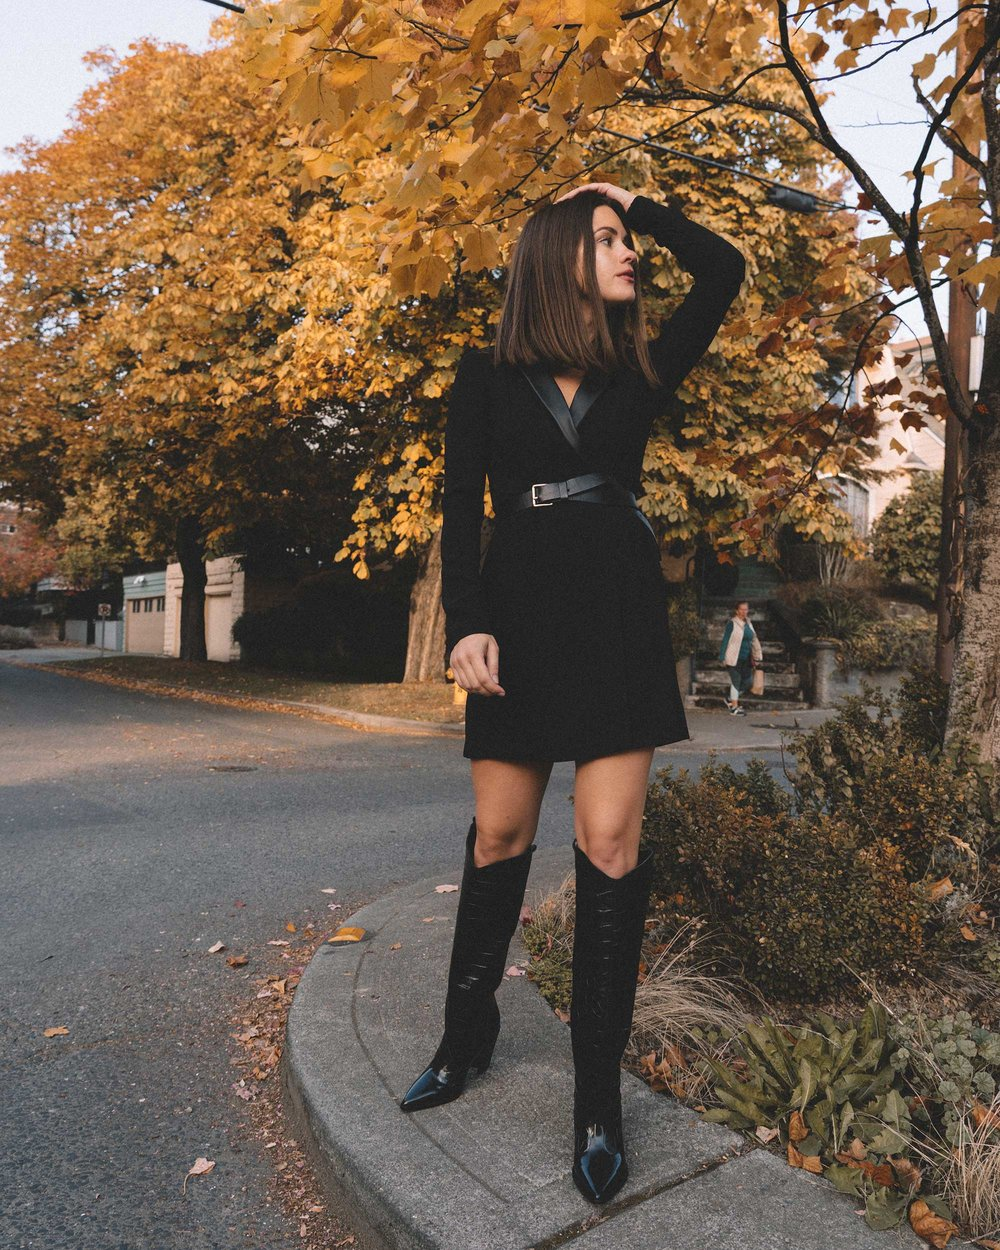 bcbgeneration blazer dress in black, Sigerson Morrison Karida Black Leather Knee High Boot, fall outfit 6.jpg